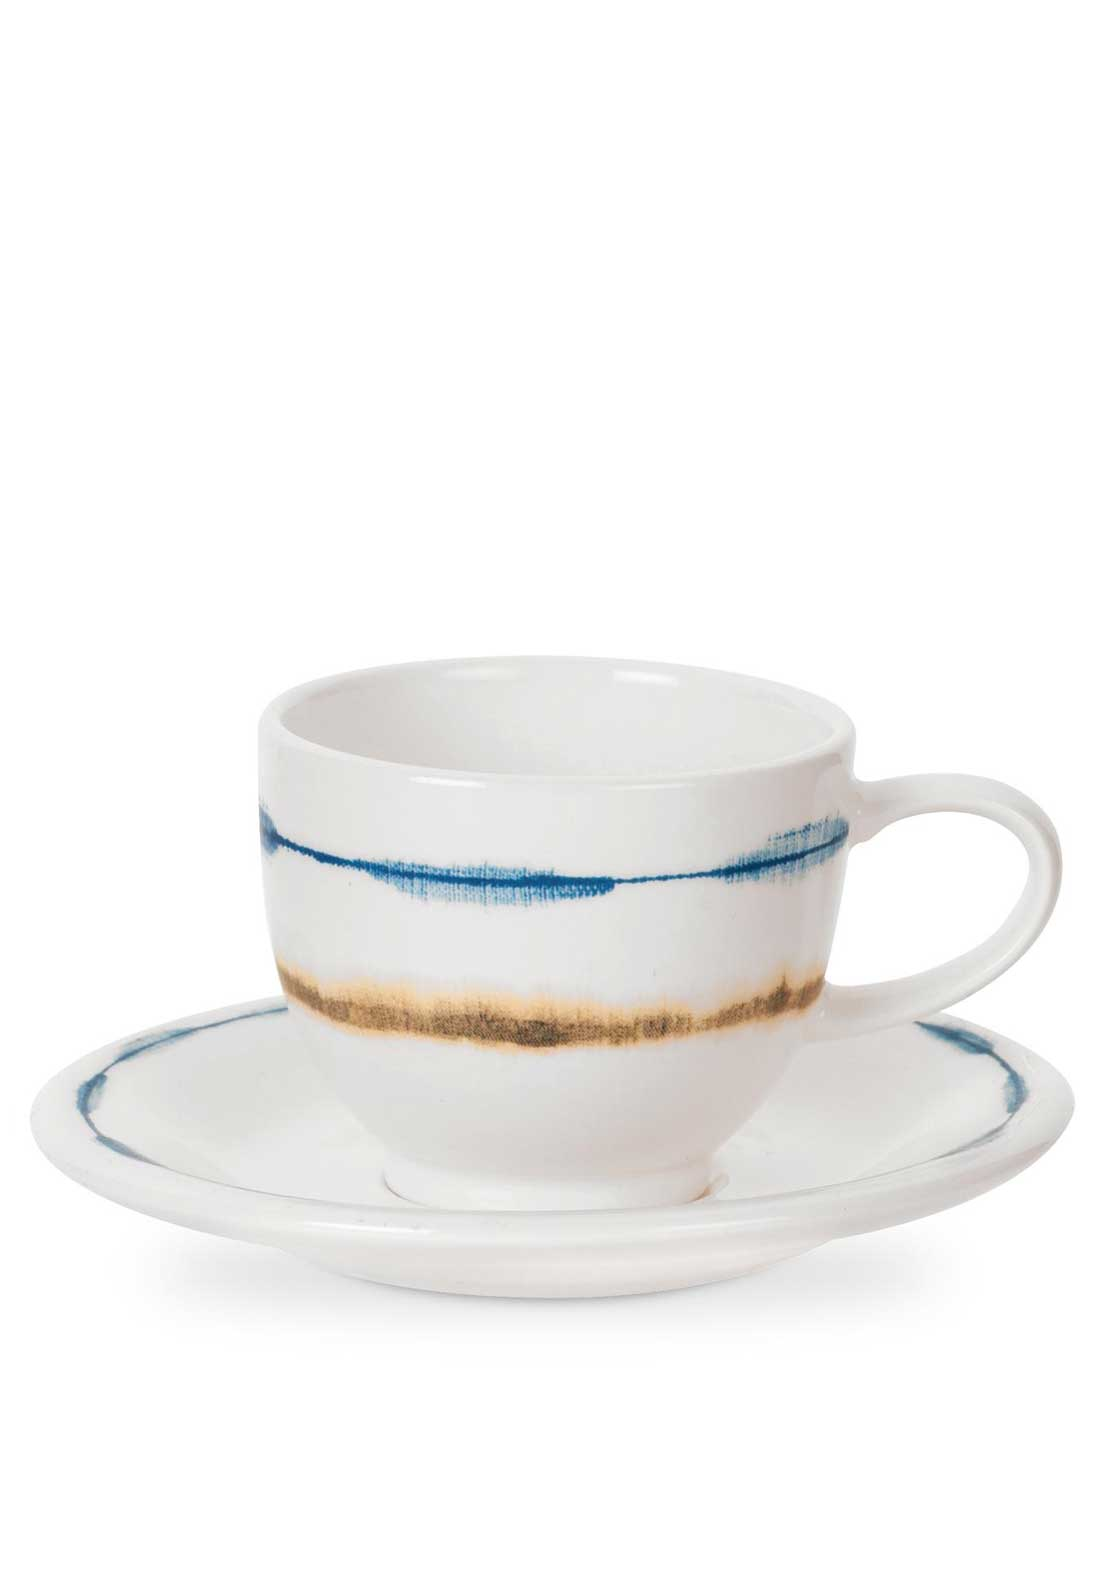 Portmeirion Coast Espresso Cup and Saucer Set